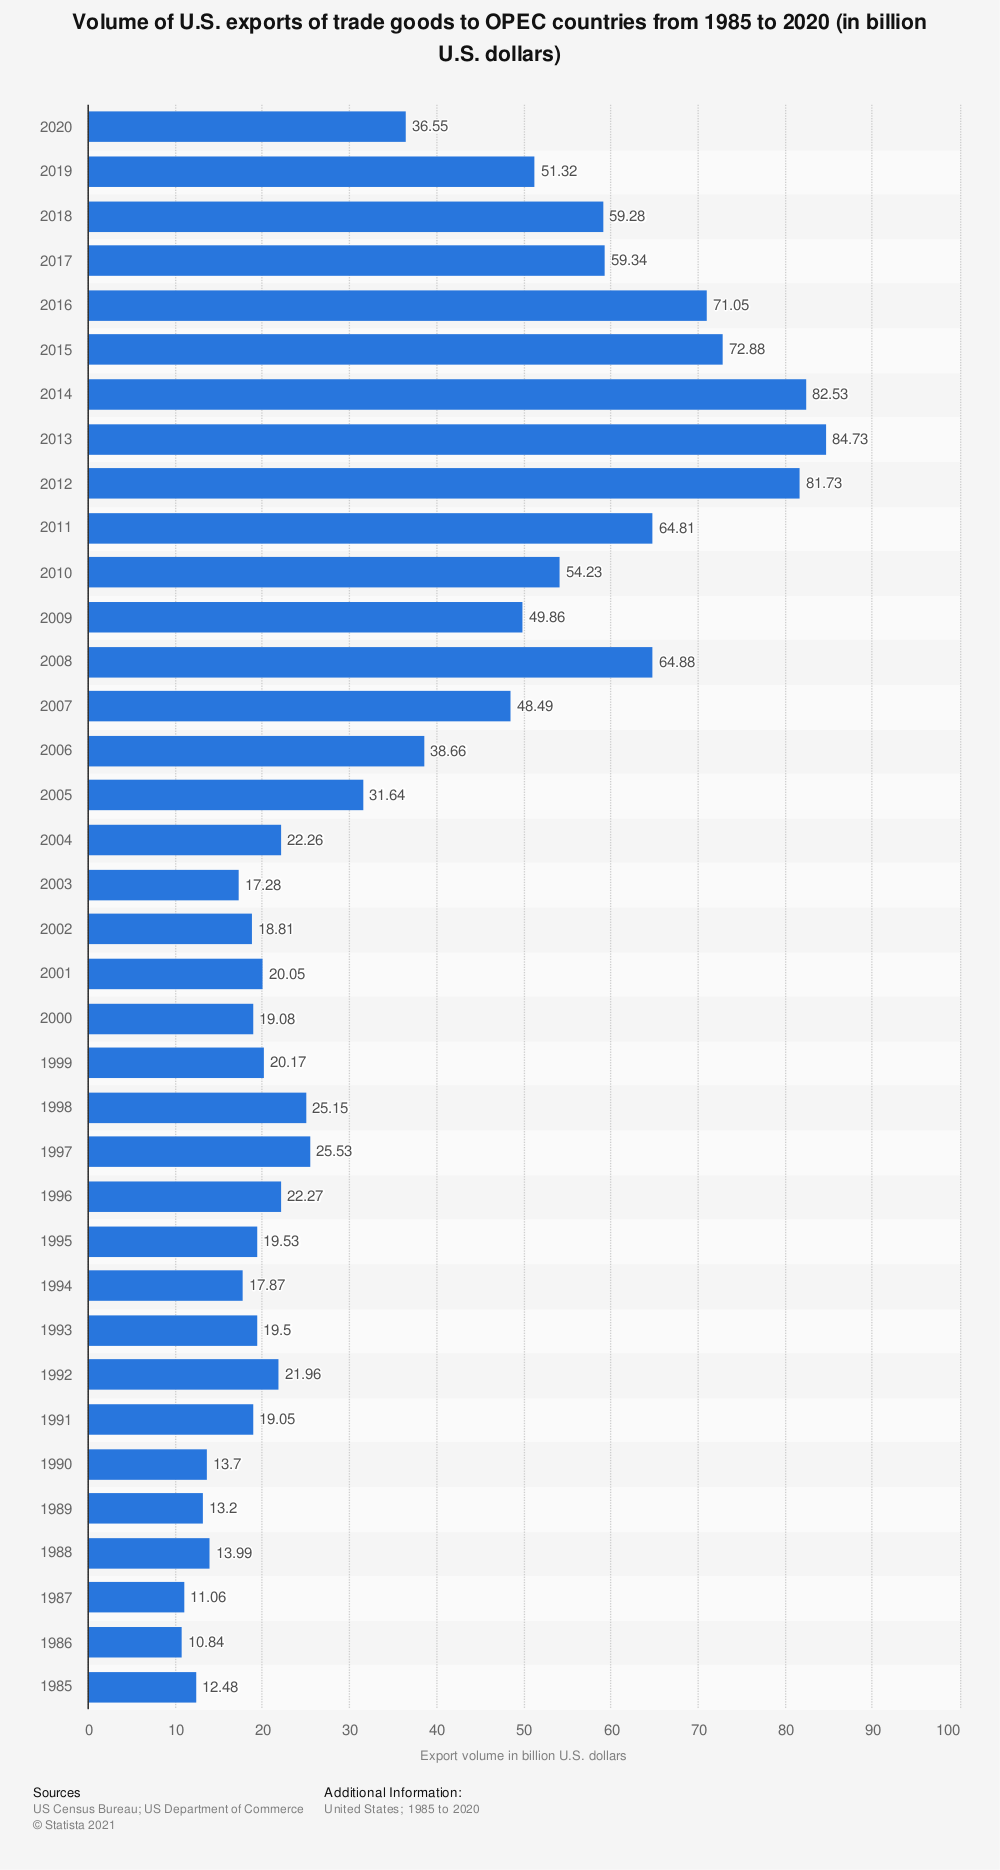 Statistic: Volume of U.S. exports of trade goods to OPEC countries from 1985 to 2018 (in billion U.S. dollars) | Statista